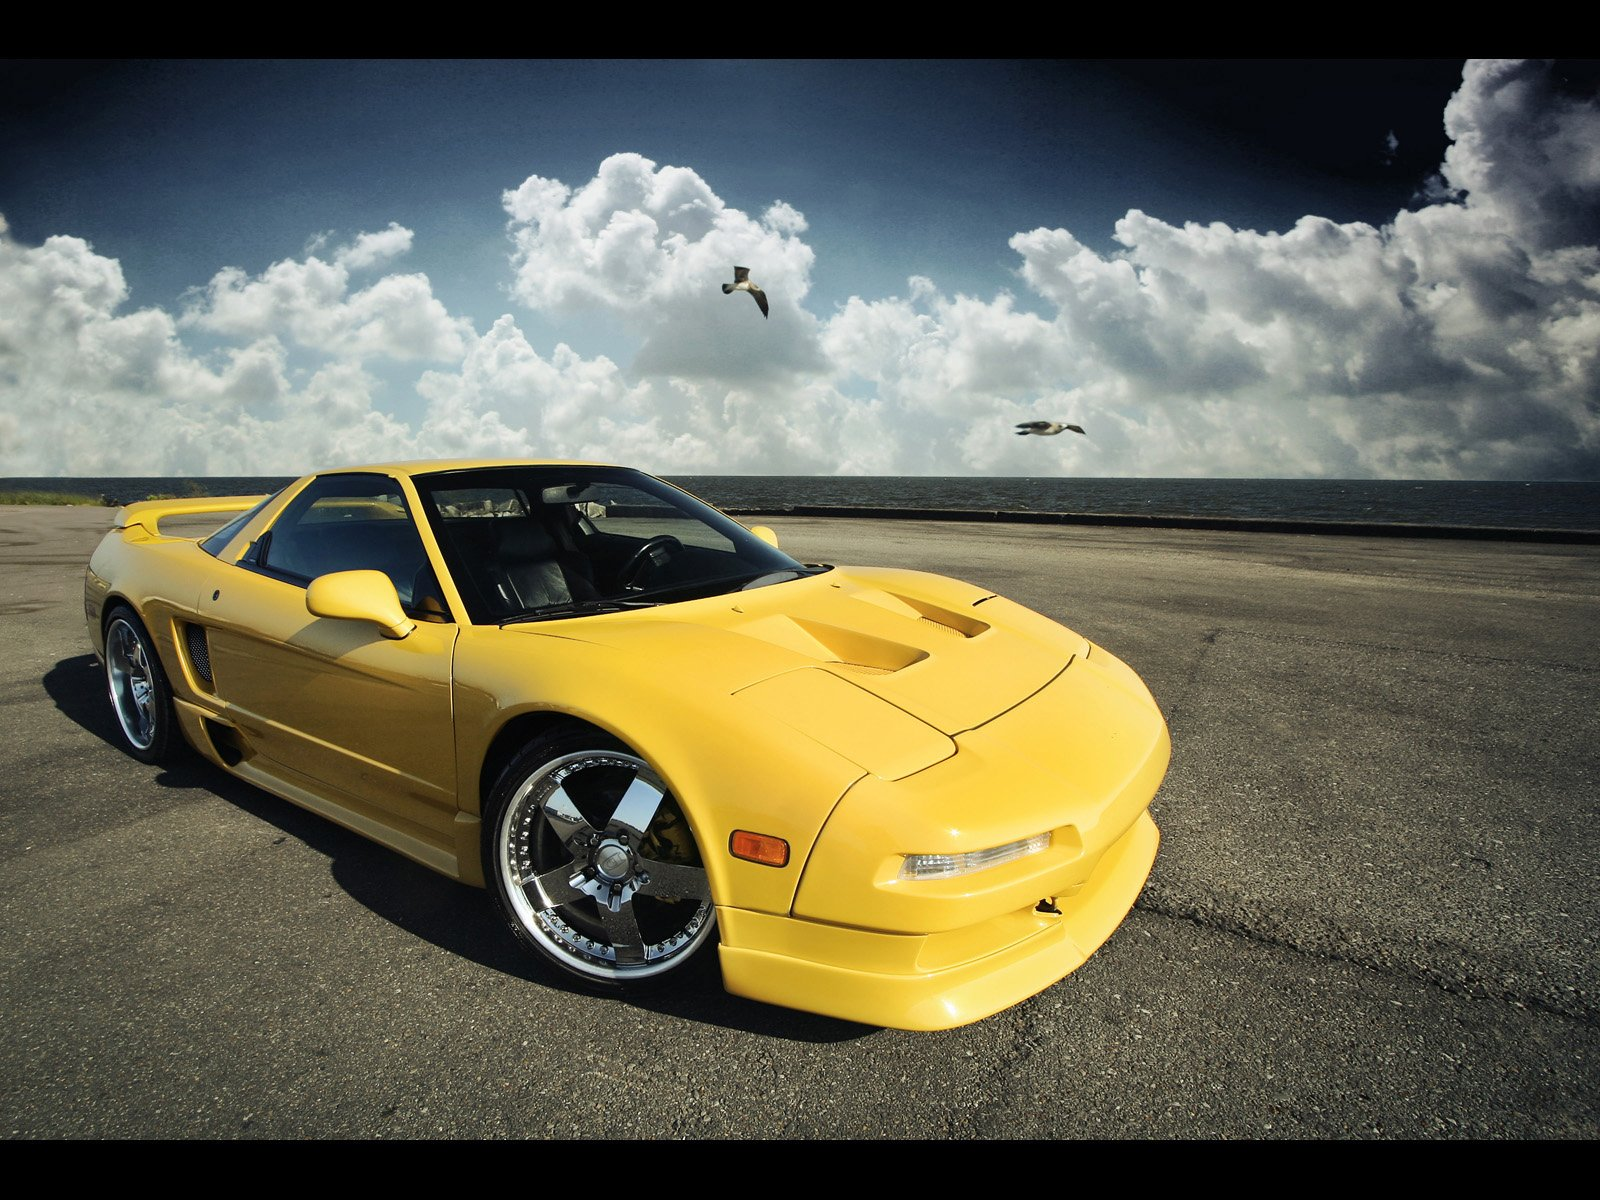 1994 Acura Nsx - pictures, information and specs - Auto ...